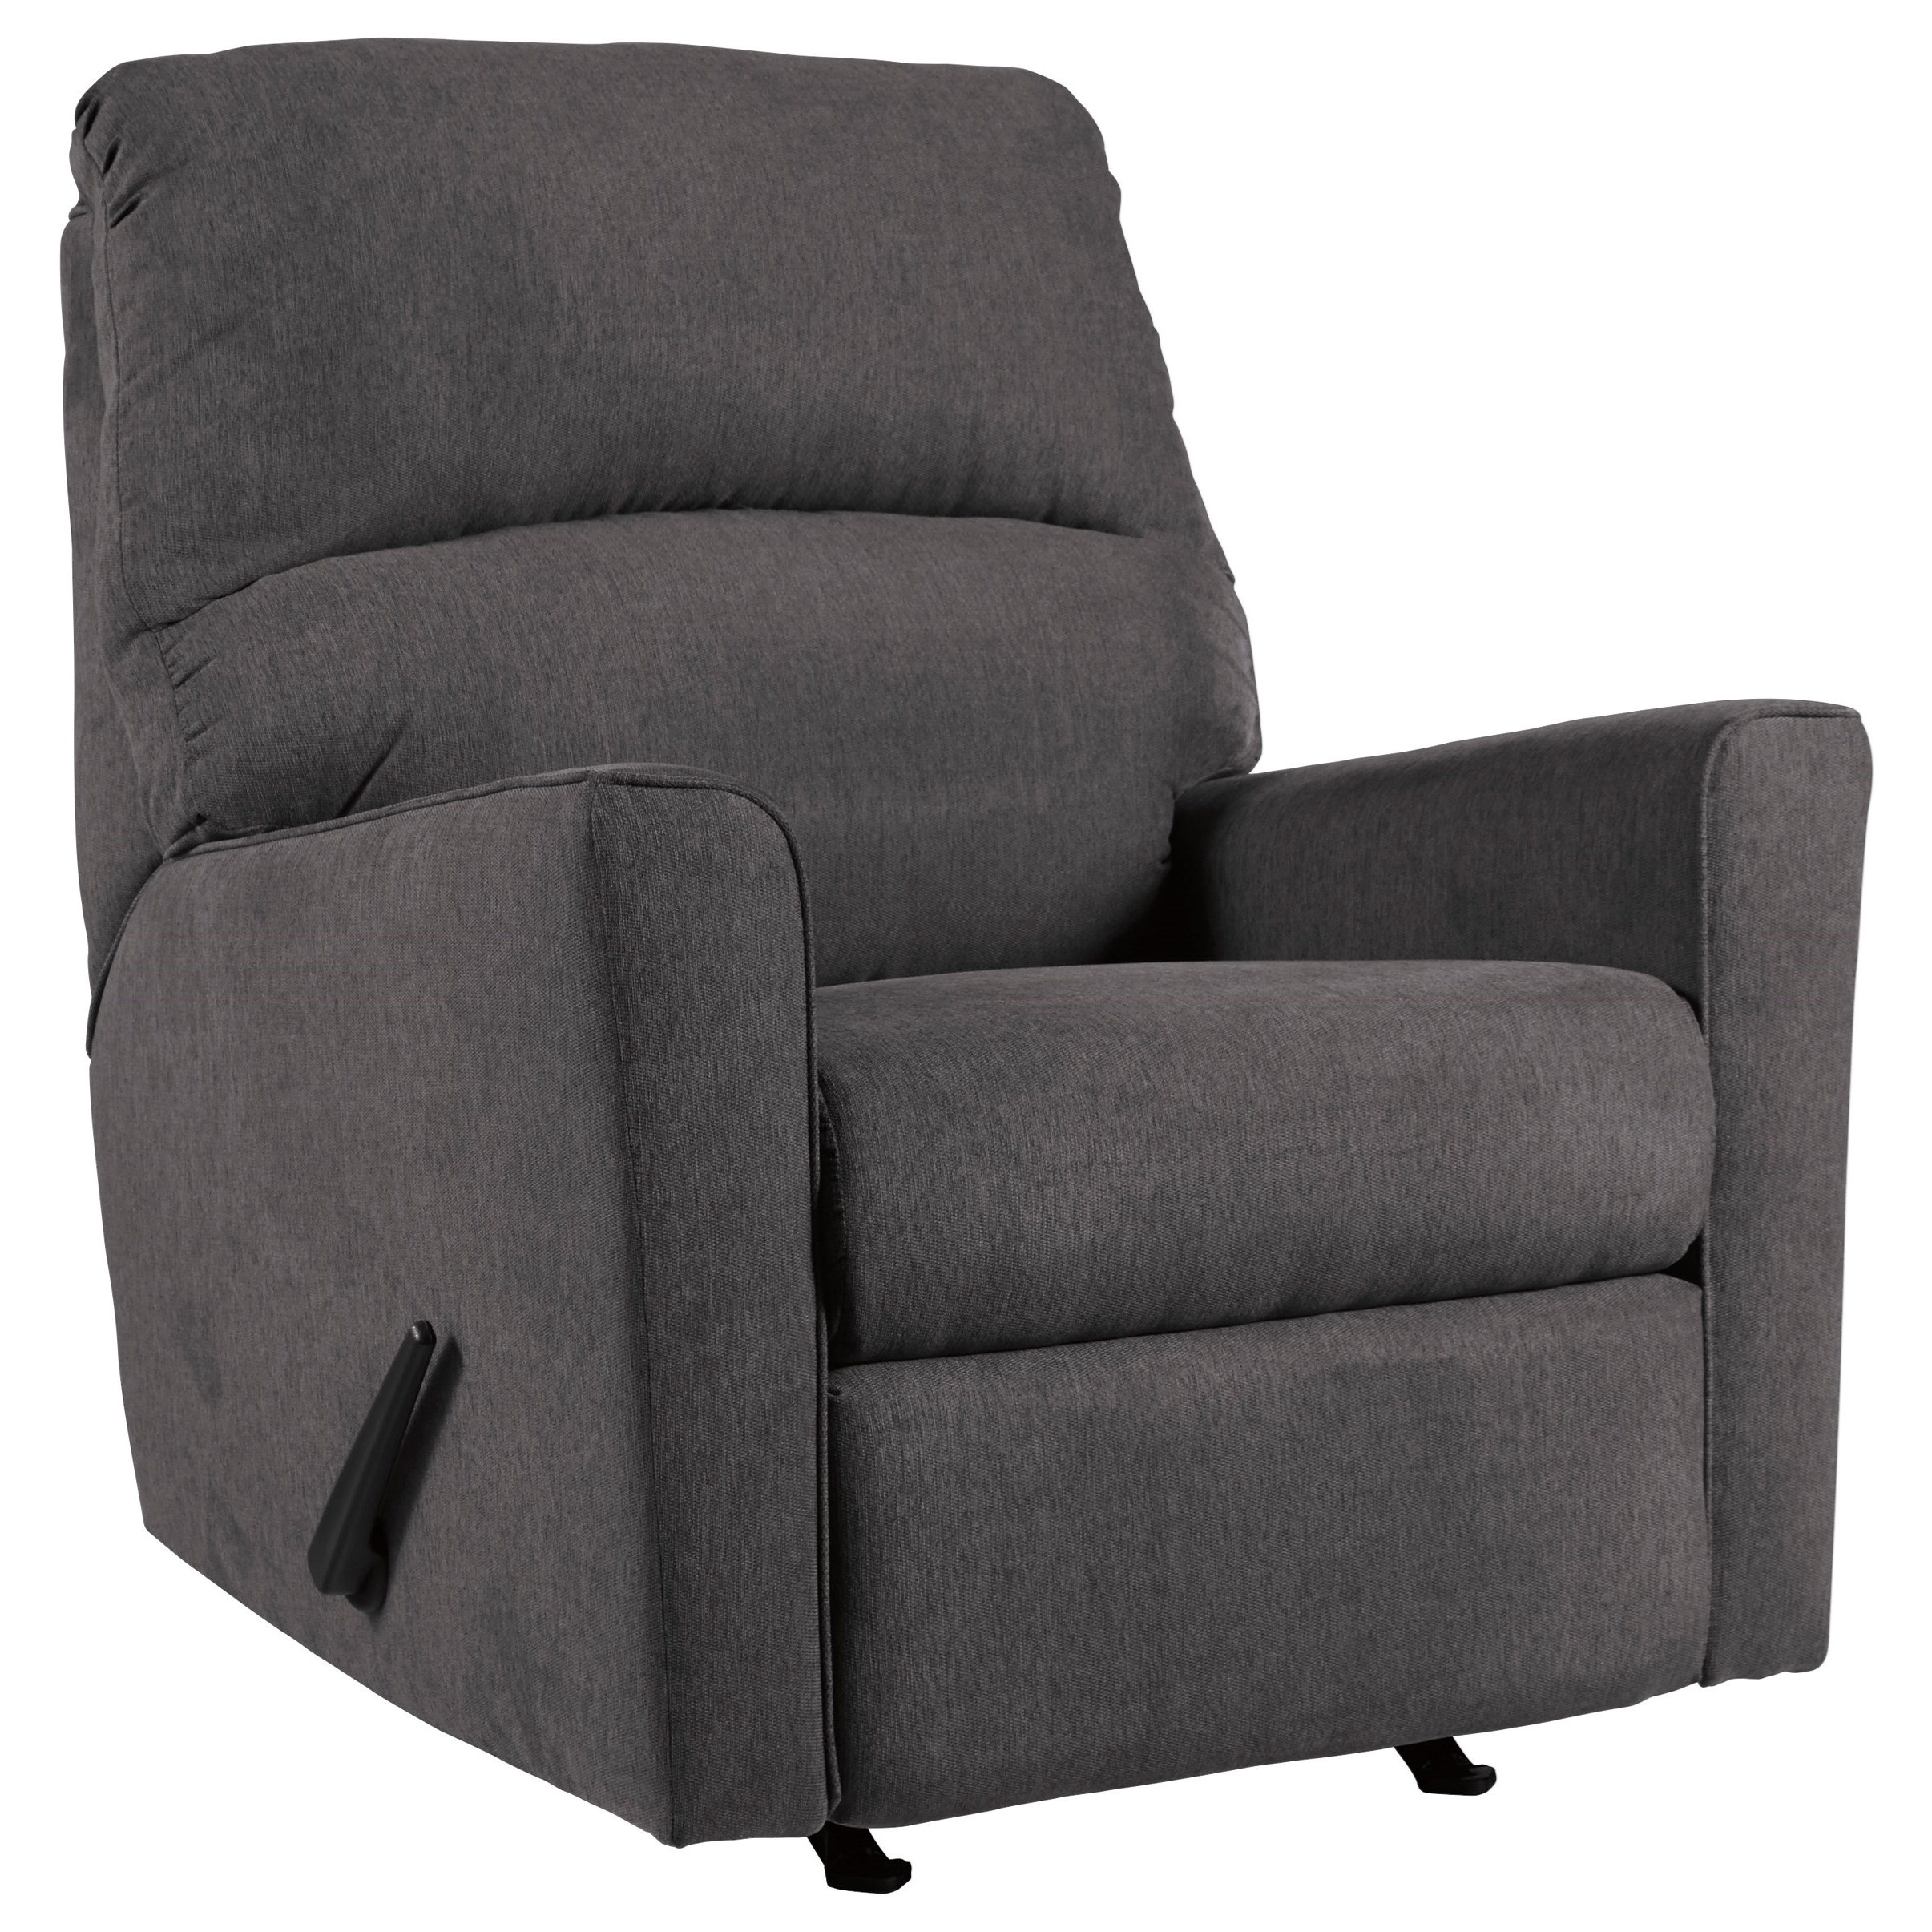 Alenya - Charcoal Rocker Recliner by Signature Design by Ashley at Catalog Outlet